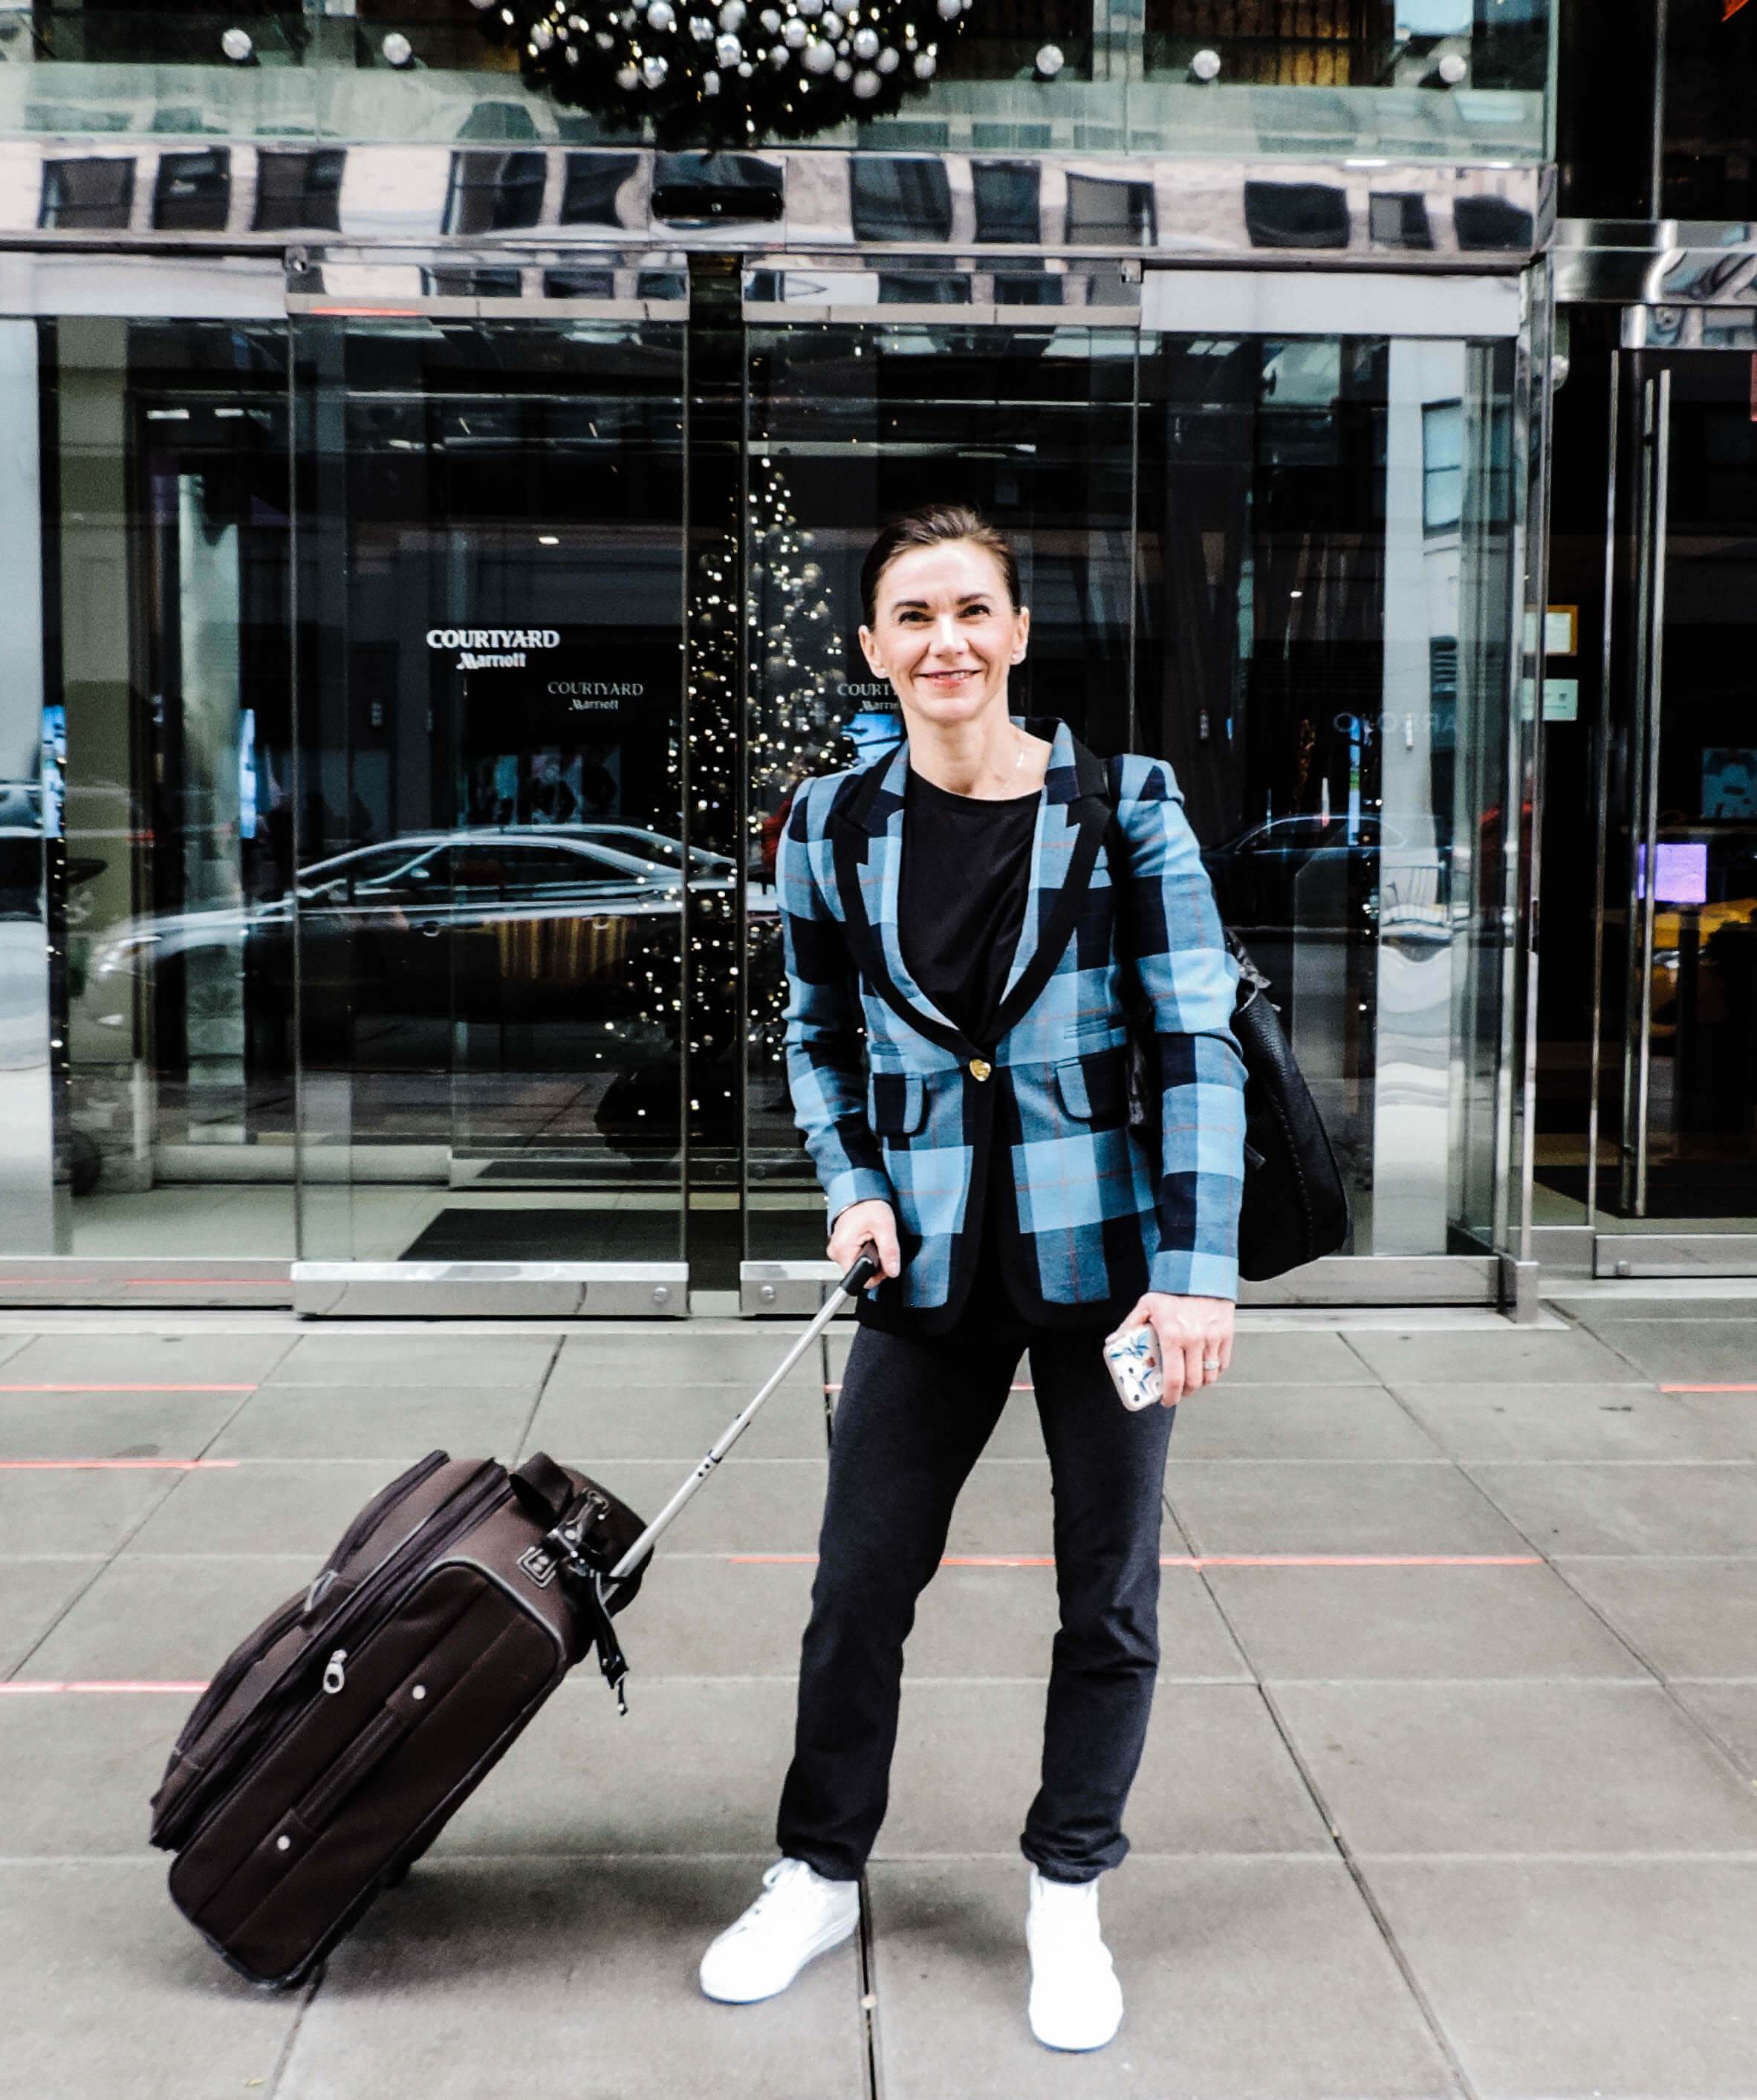 D by denise New York modern middle age blog